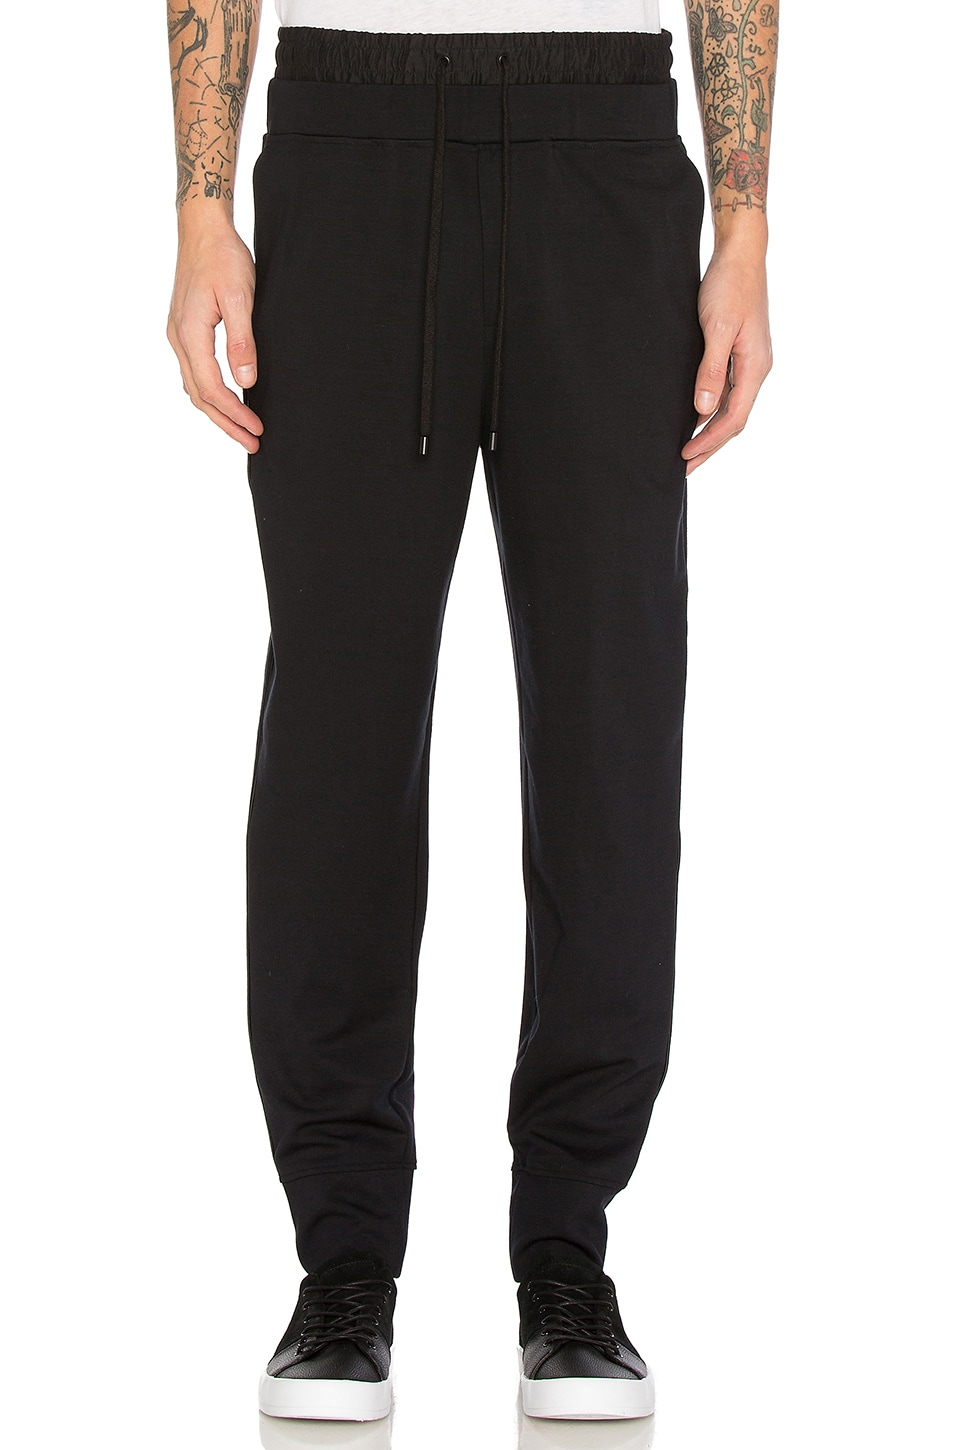 Fjorke Sweatpant by Public School